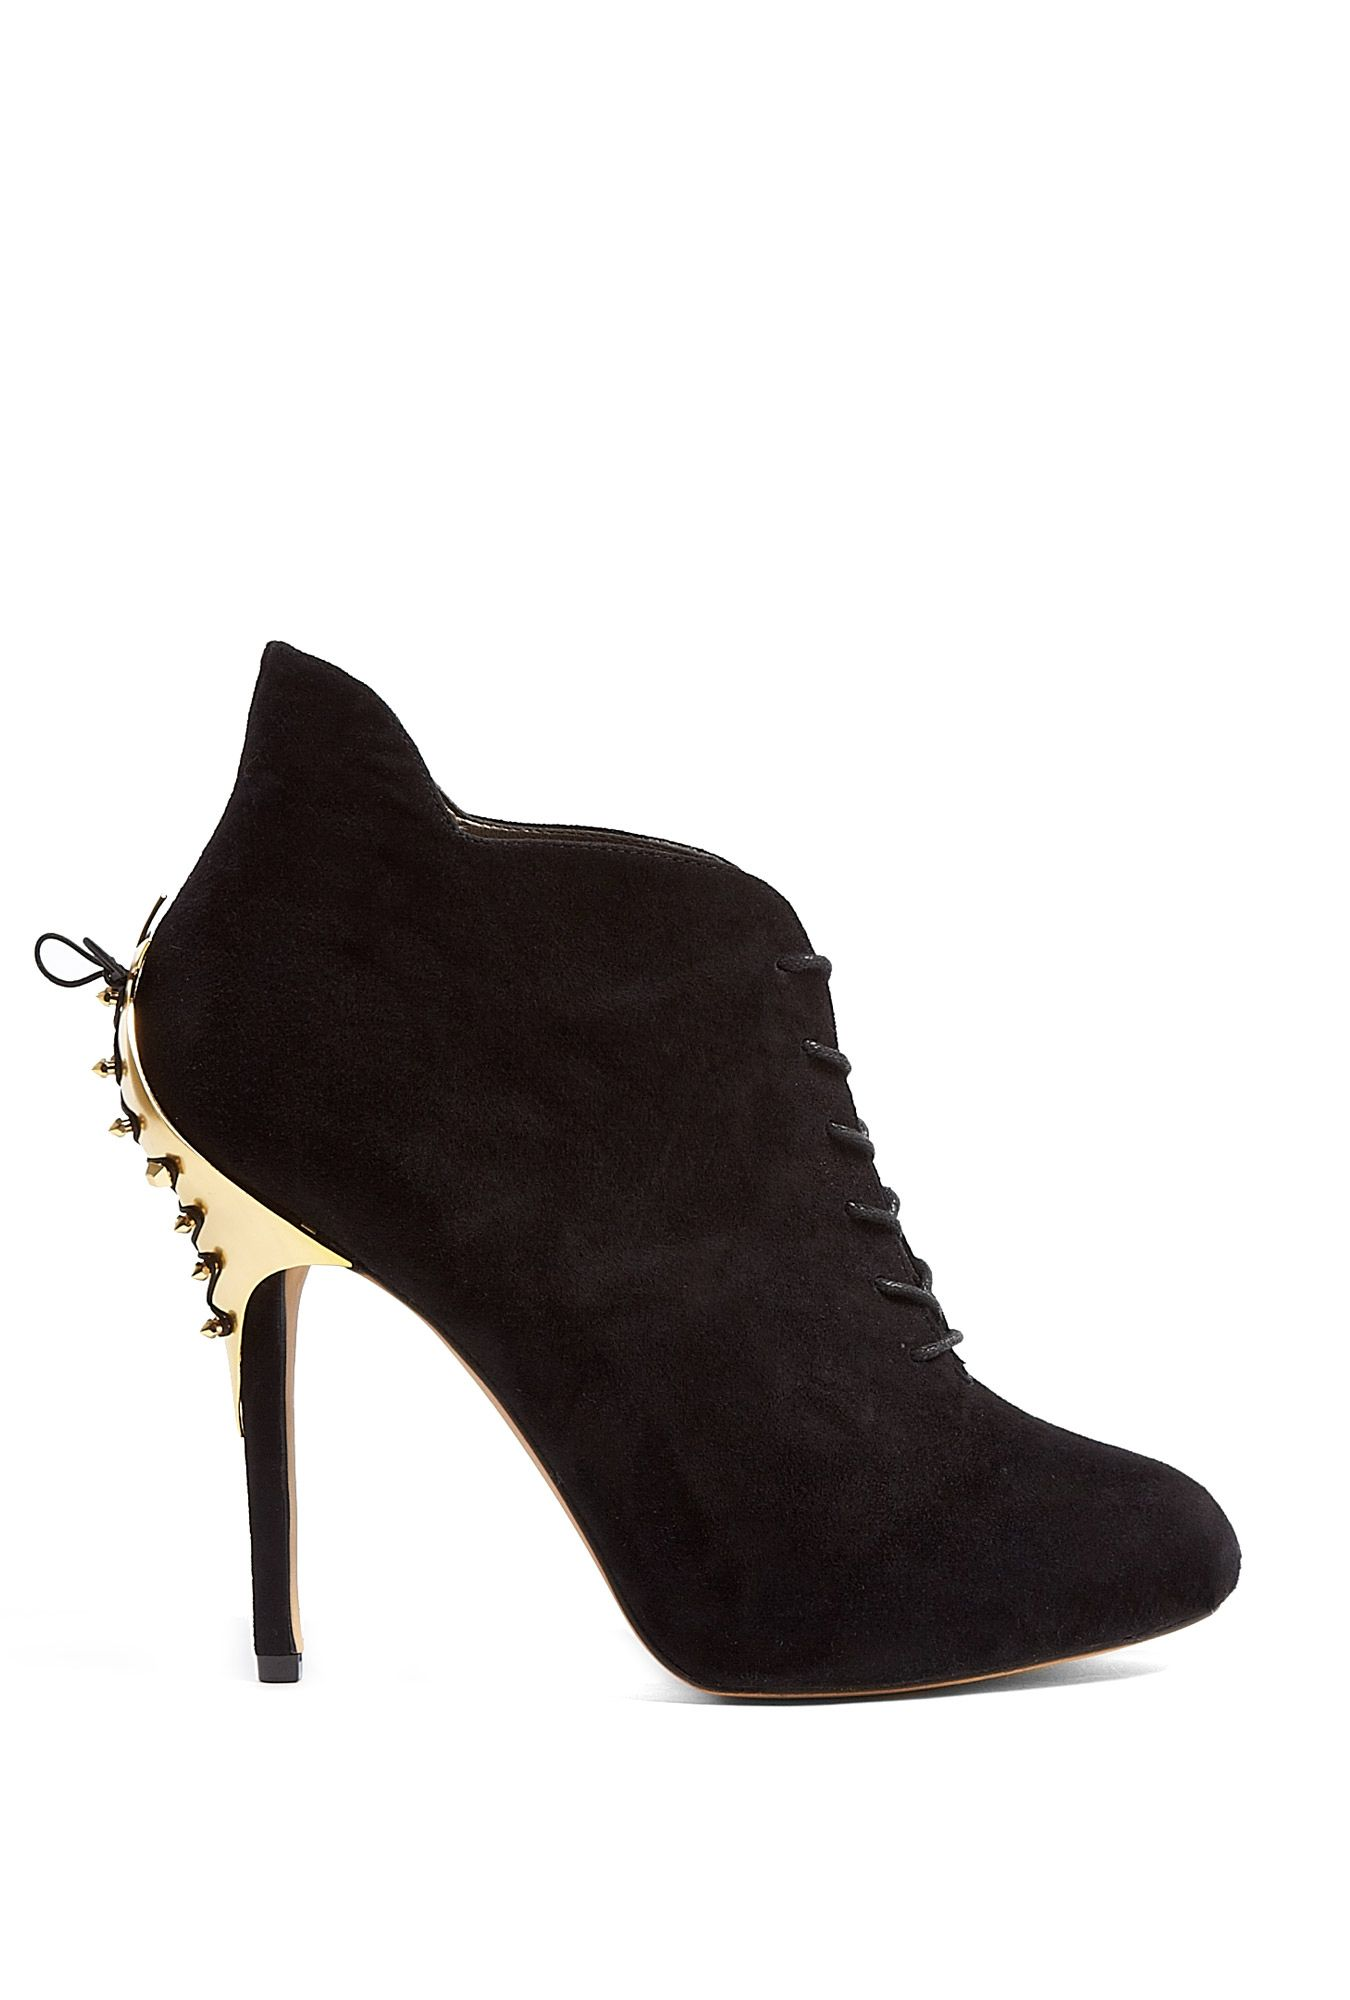 Black Suede Lace Up Elsa Ankle Boots by Sam Edelman